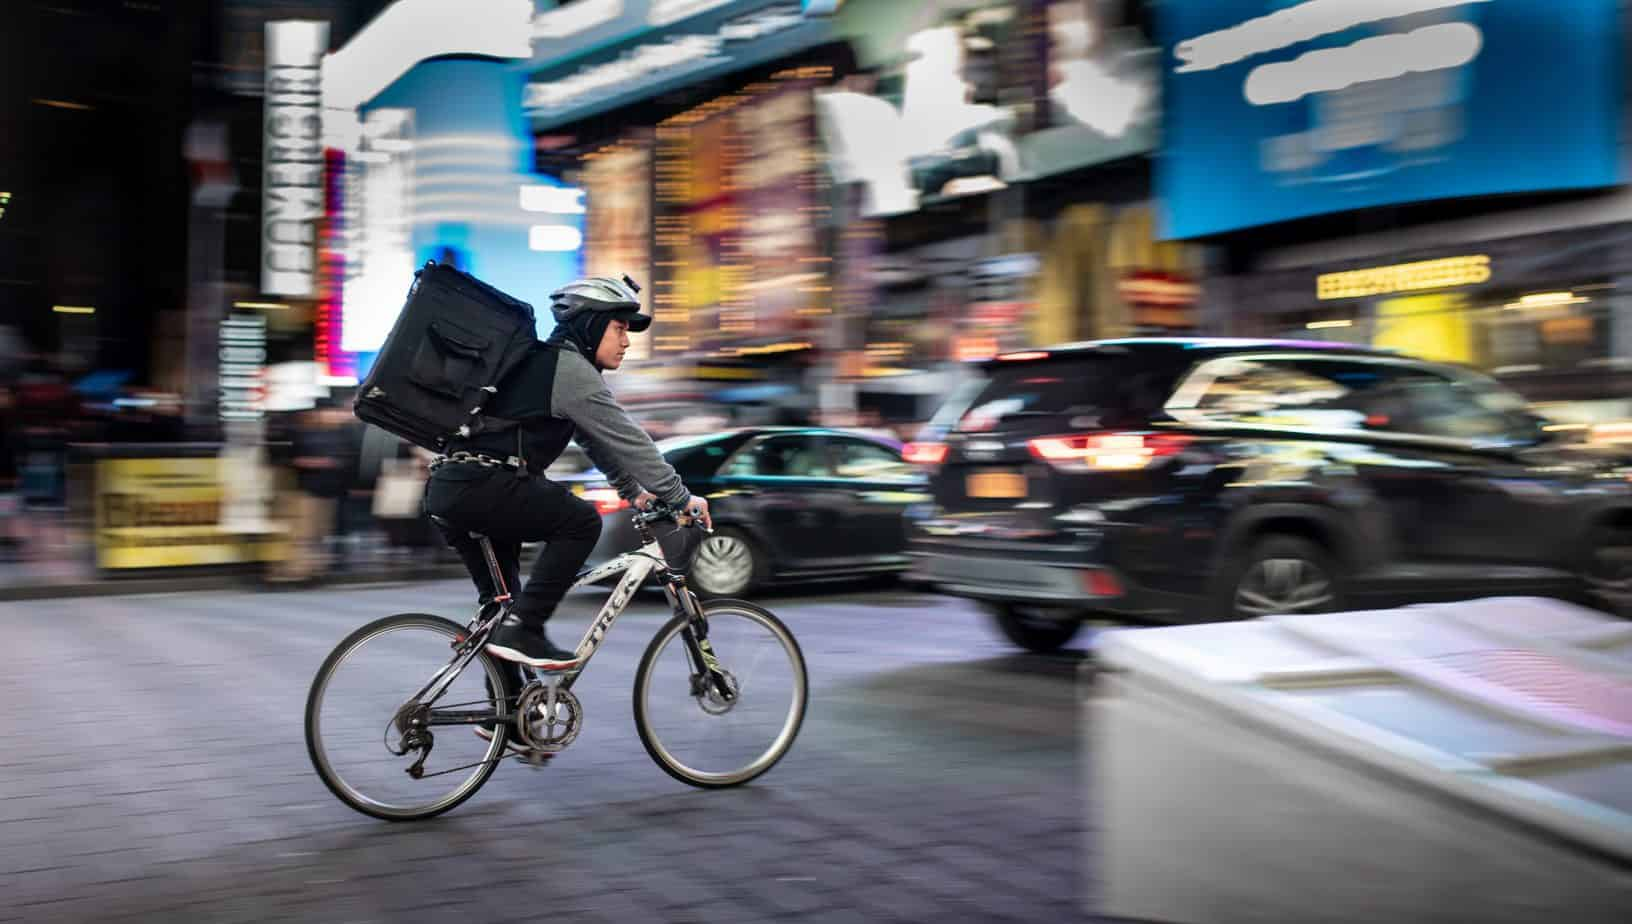 Man on bicycle delivering food